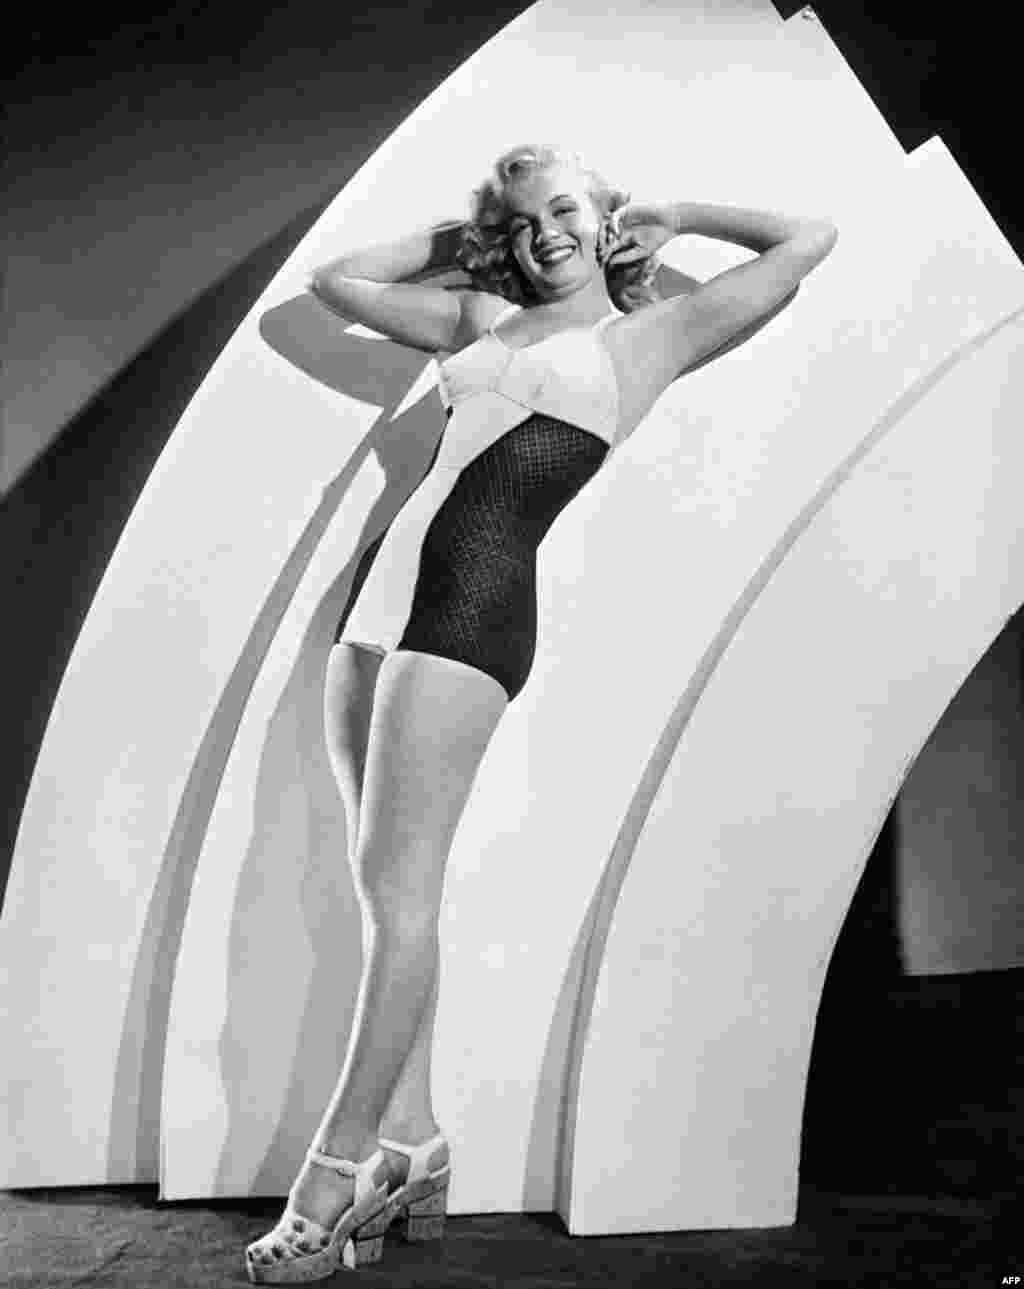 Marilyn Monroe showing off some swimwear in 1950. The actress also worked regularly as a model before she made her breakthrough as a Hollywood leading lady.